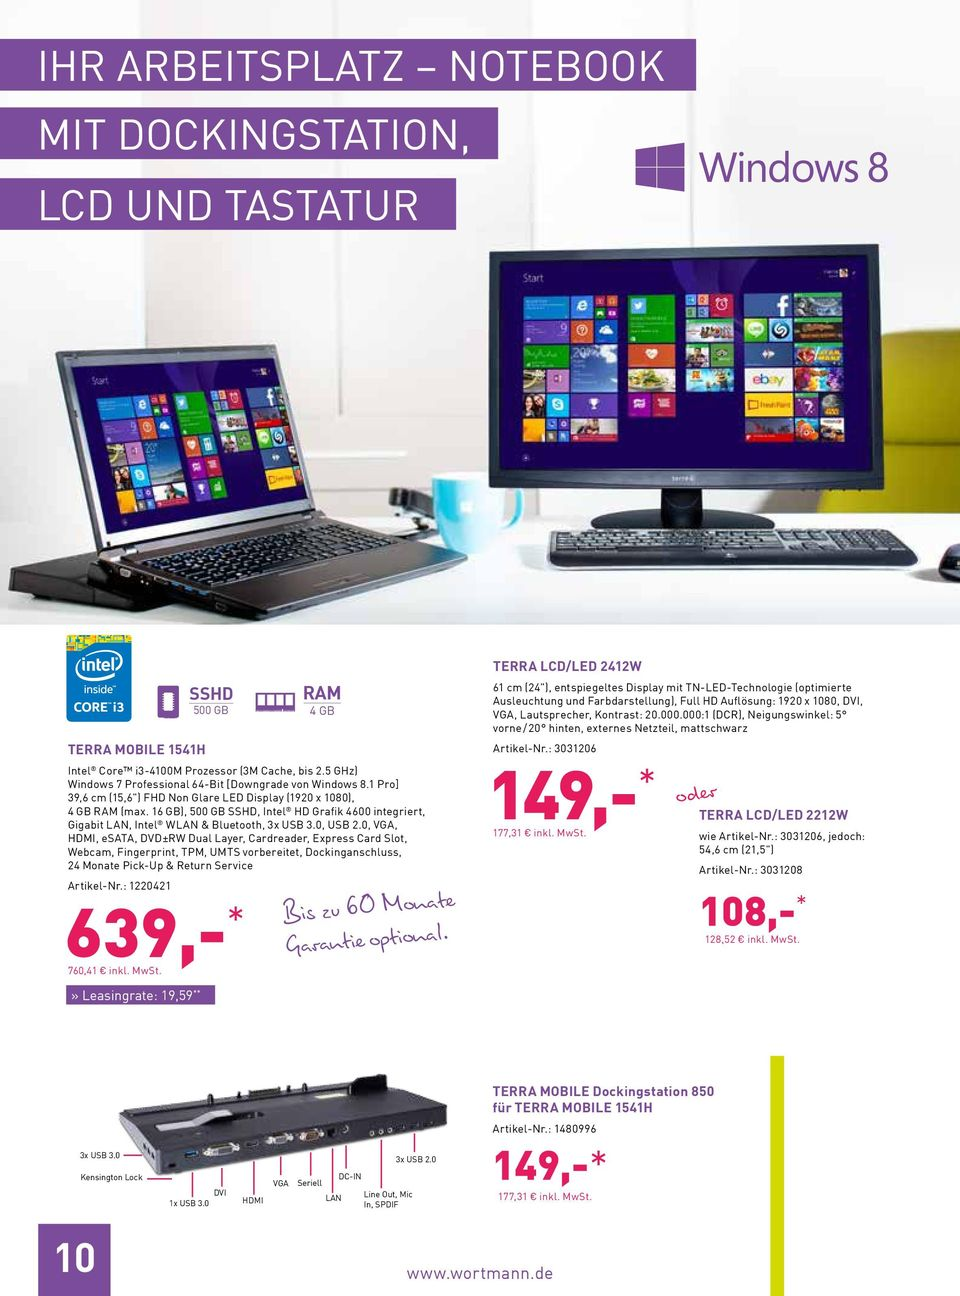 16 GB), 500 GB SSHD, Intel HD Grafik 4600 integriert, Gigabit LAN, Intel WLAN & Bluetooth, 3x USB 3.0, USB 2.